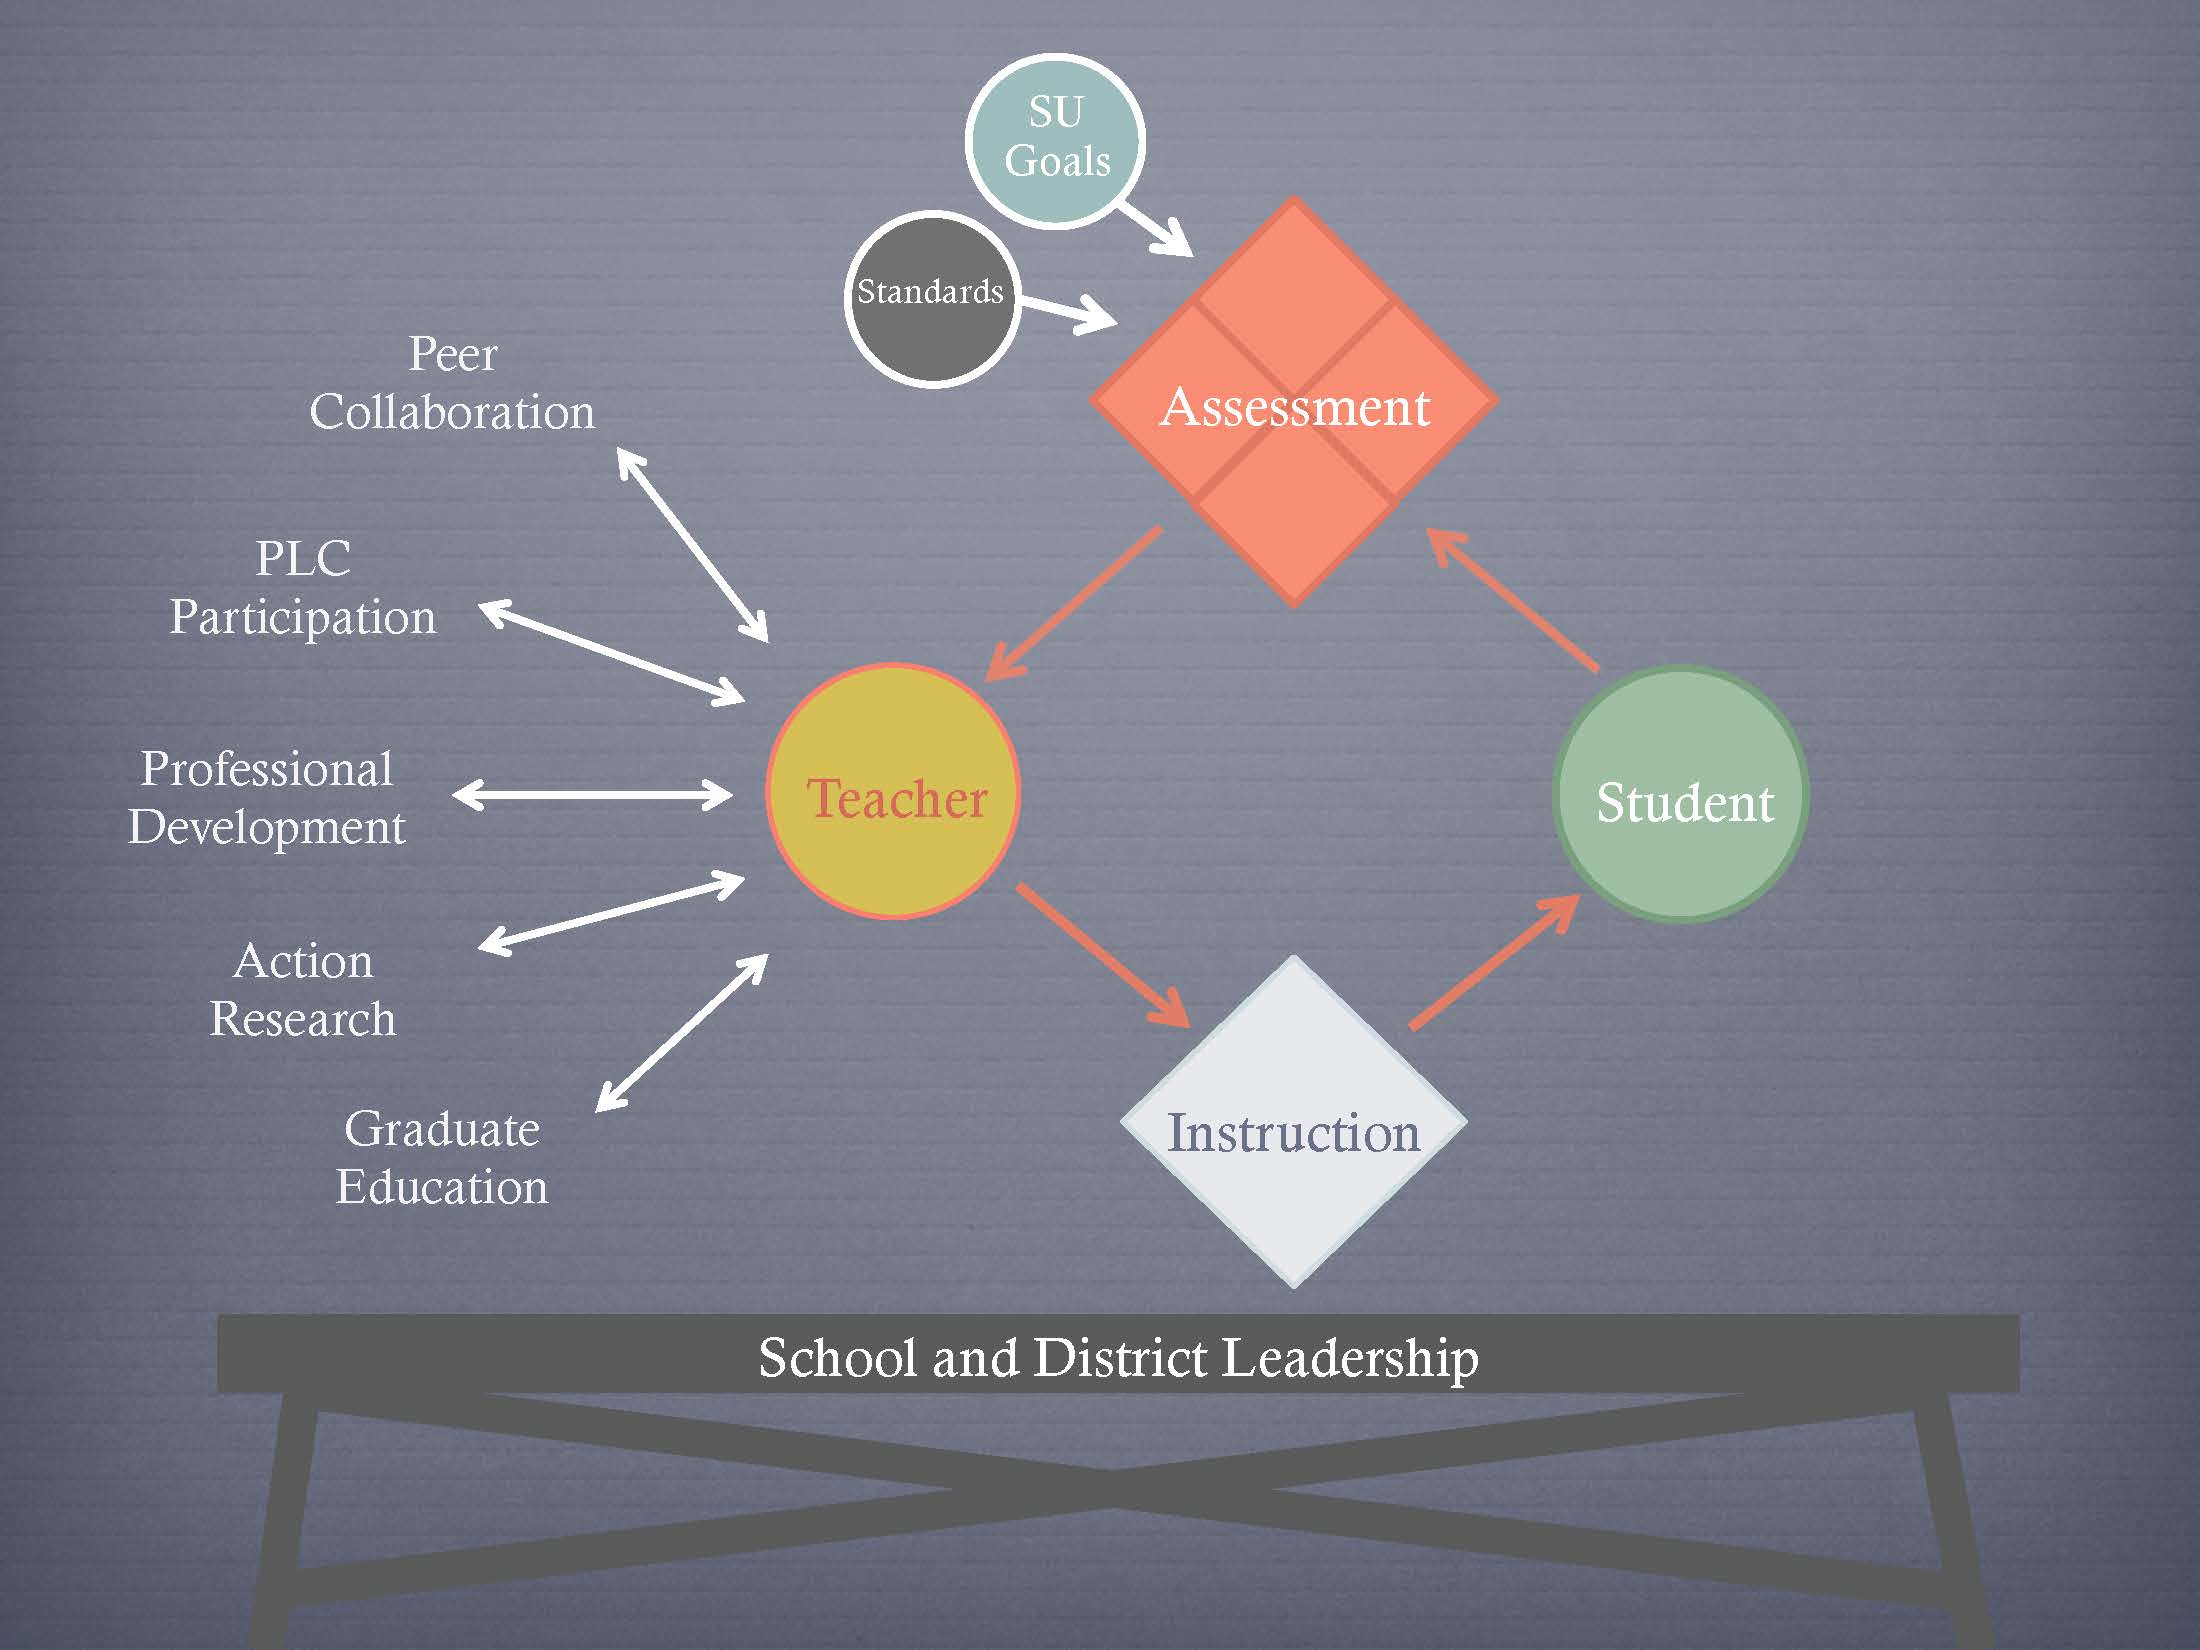 Figure 1. Supporting organizational learning (Steele, 2013).